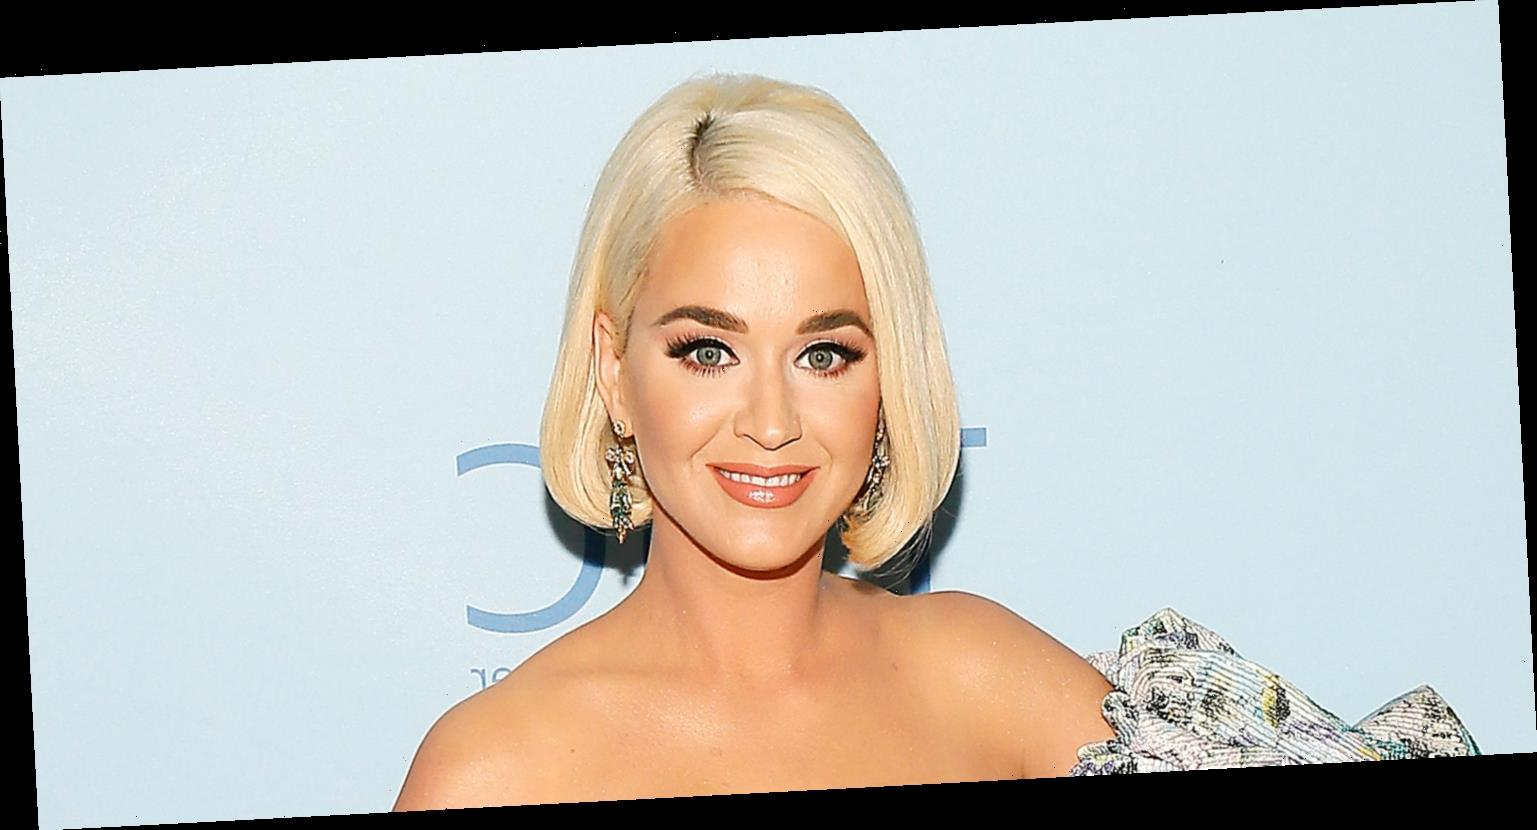 Katy Perry Sweetly Describes How Daughter Daisy 'Changed My Life'